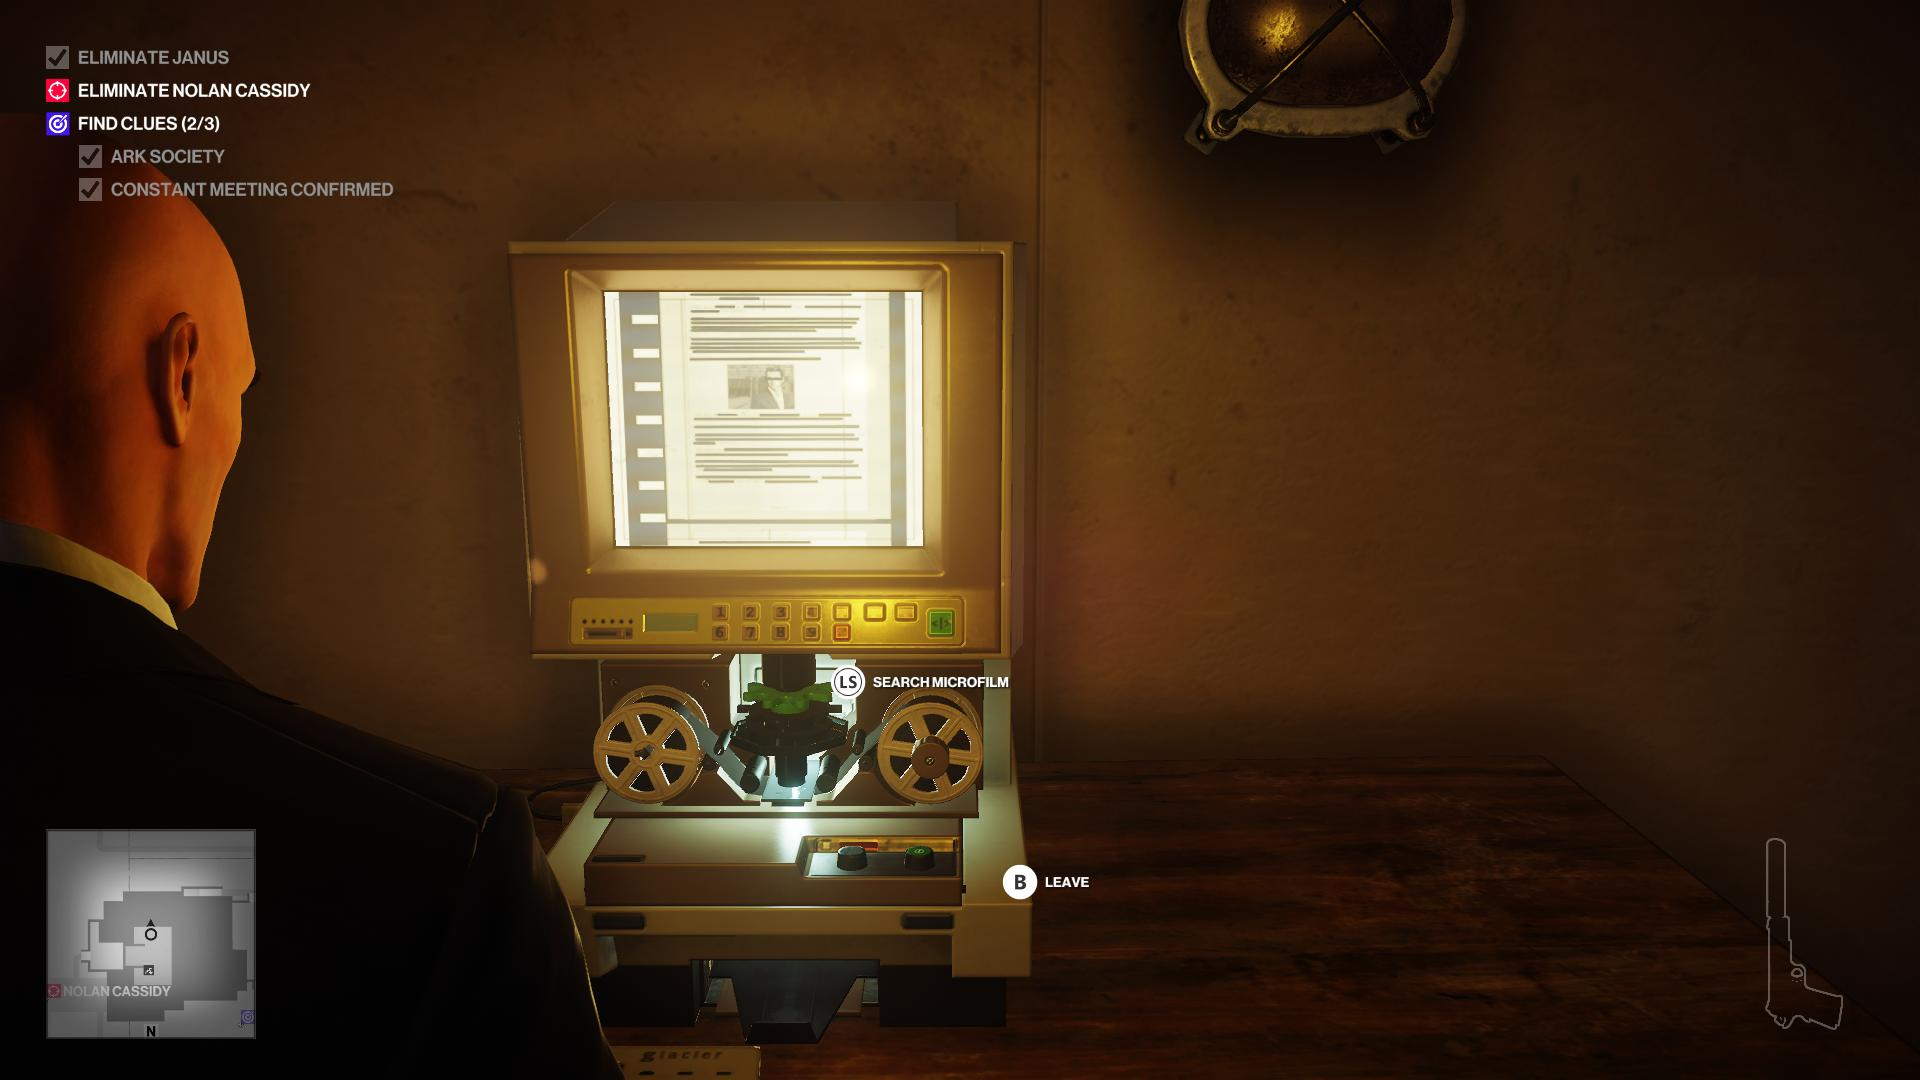 Agent 47 examining microfilm on a microfilm reader.